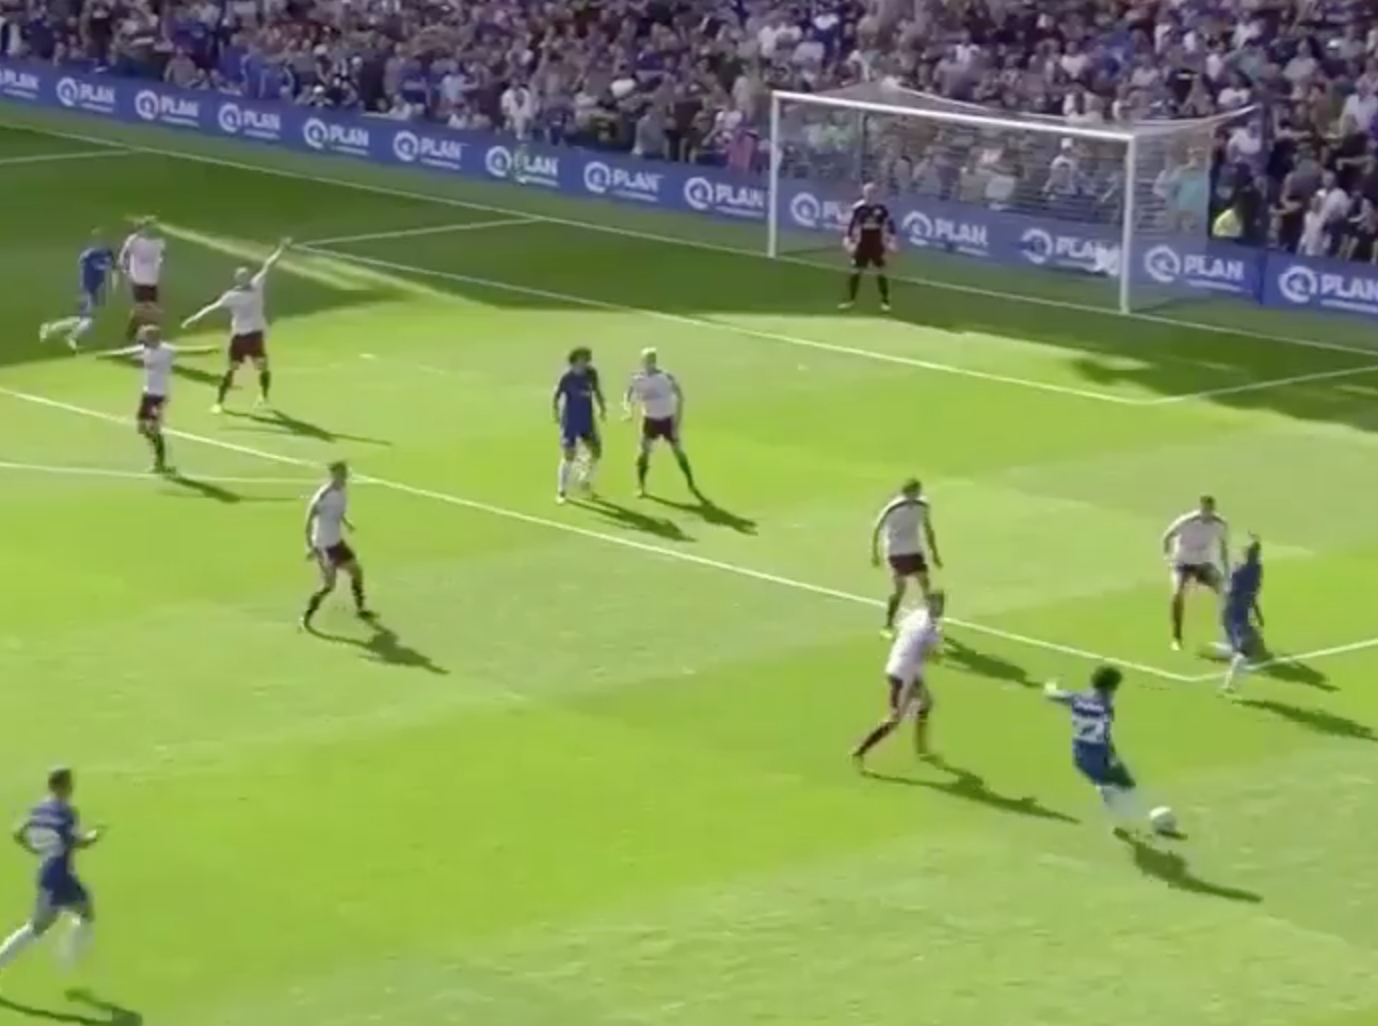 Alvaro Morata scores his first goal for Chelsea in defeat to Burnley